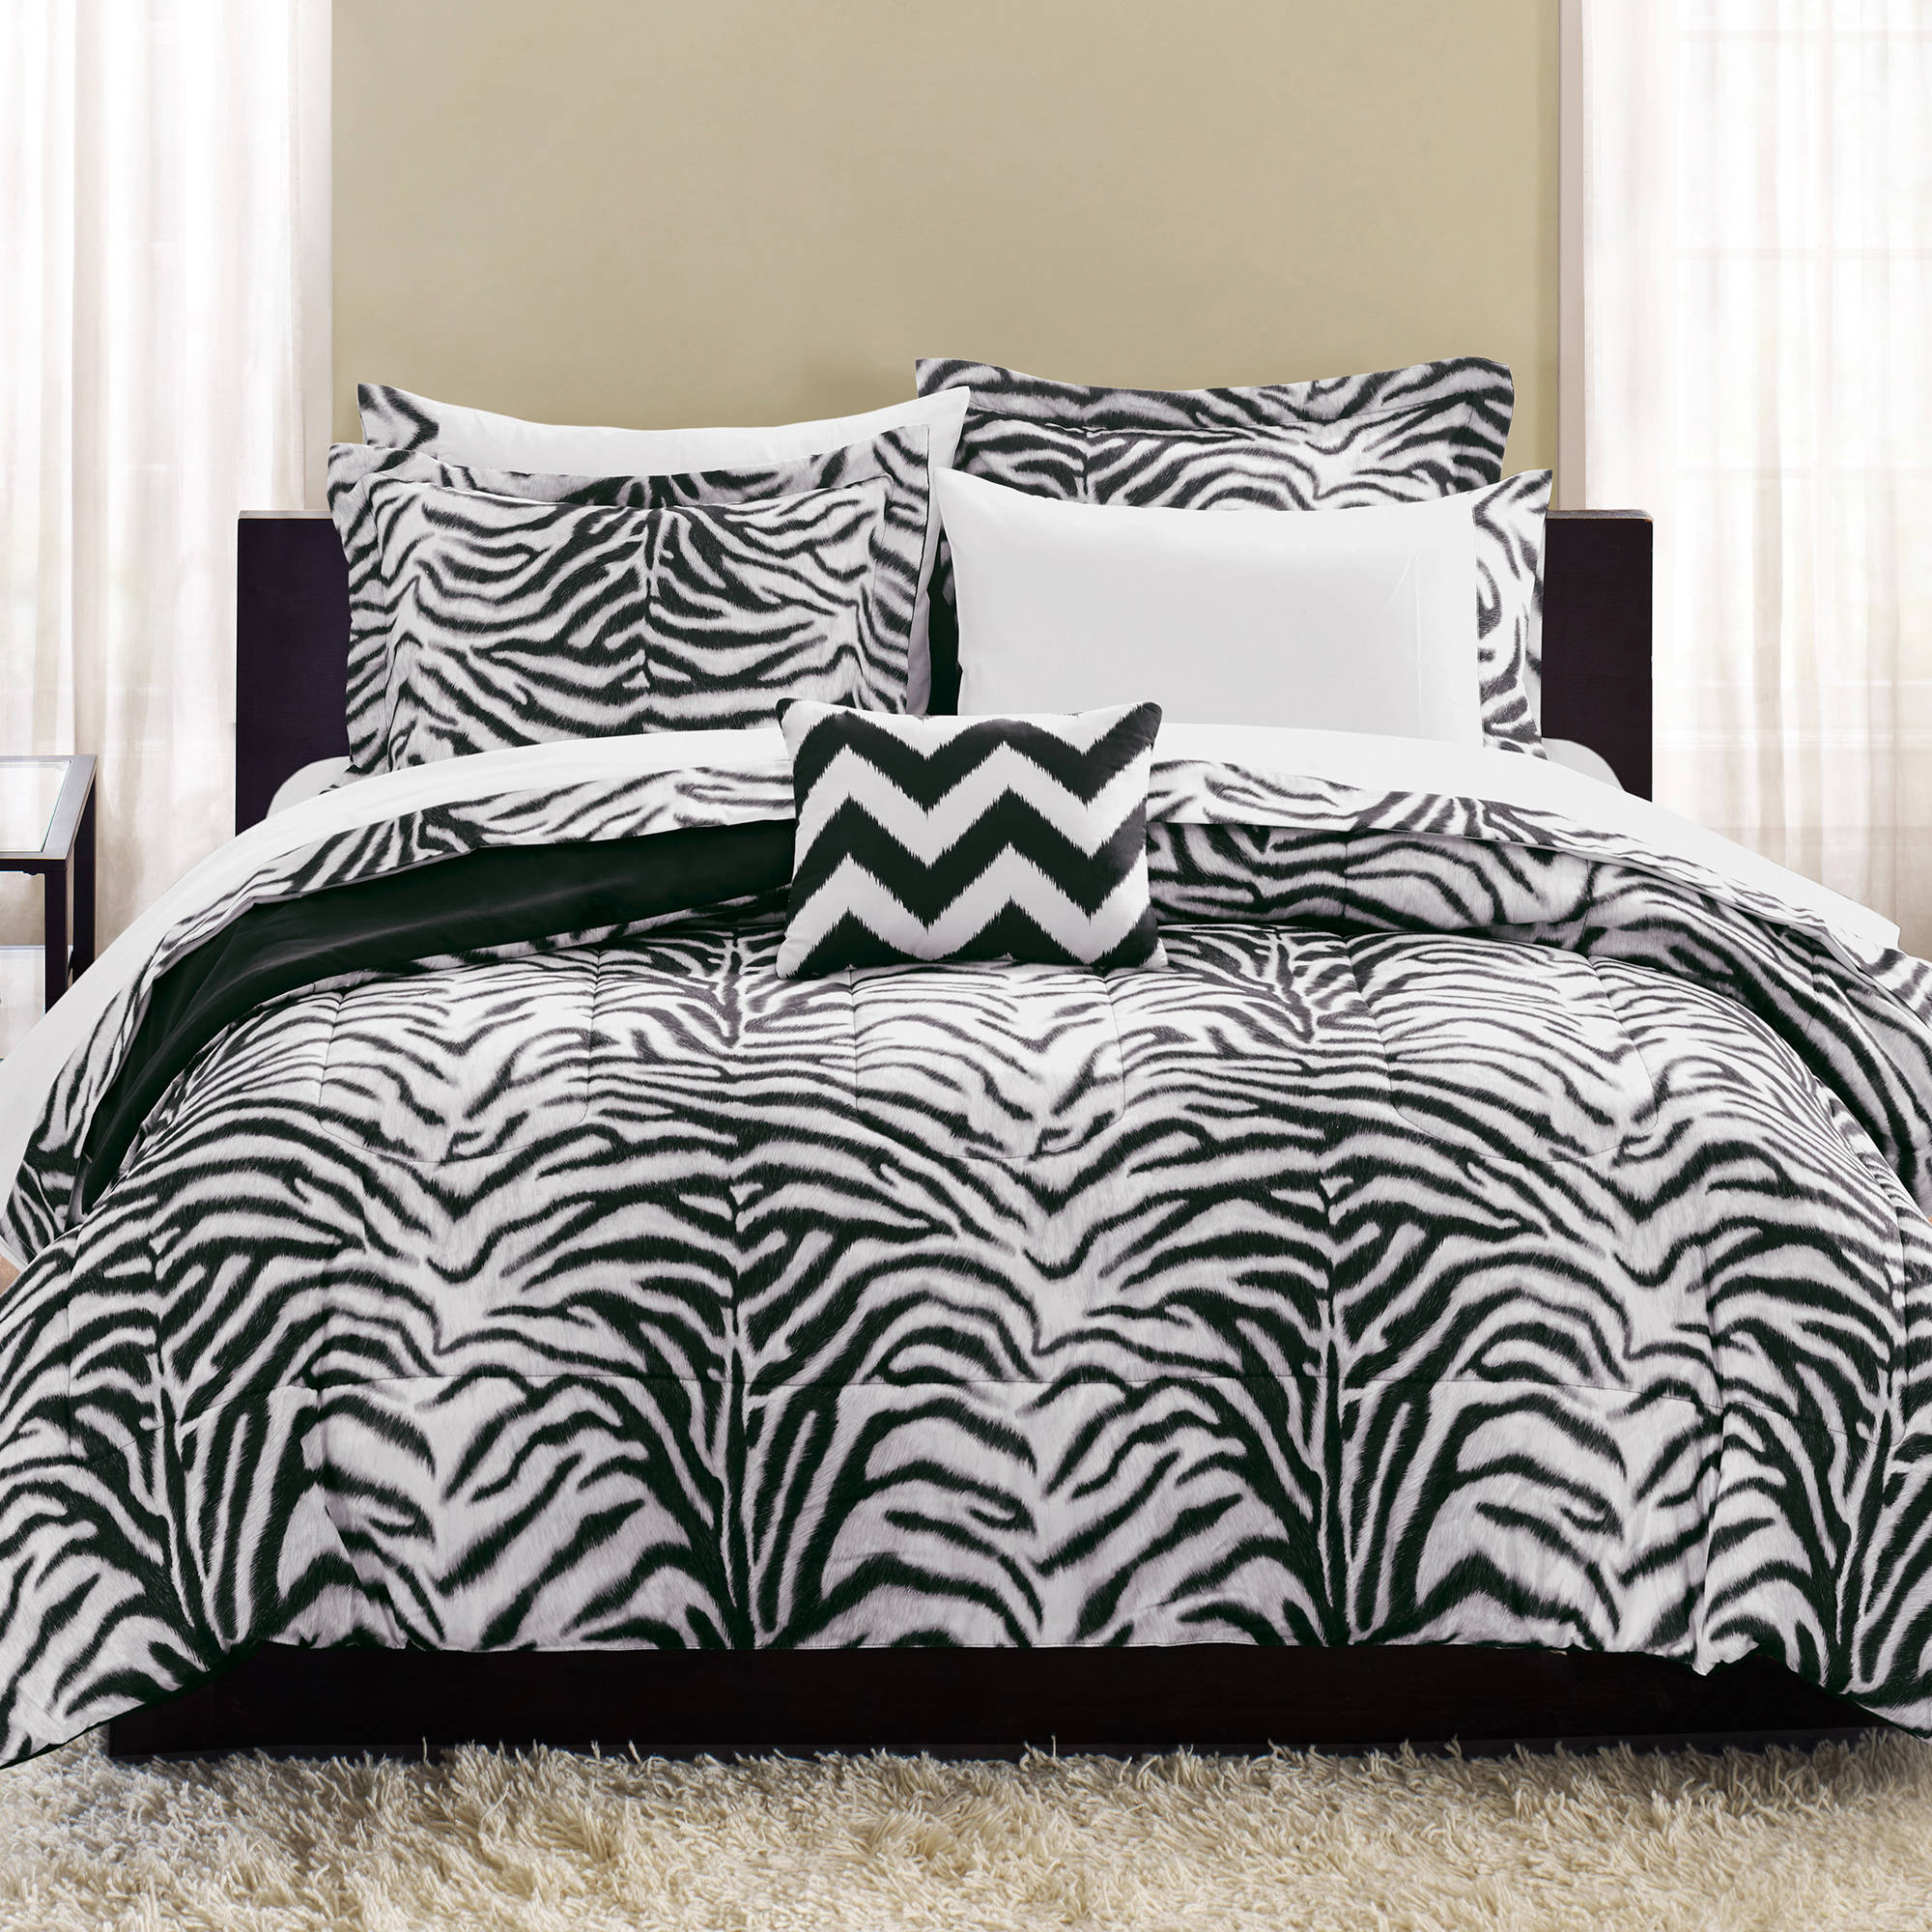 Mainstays Zebra Bed in a Bag Complete Bedding Set